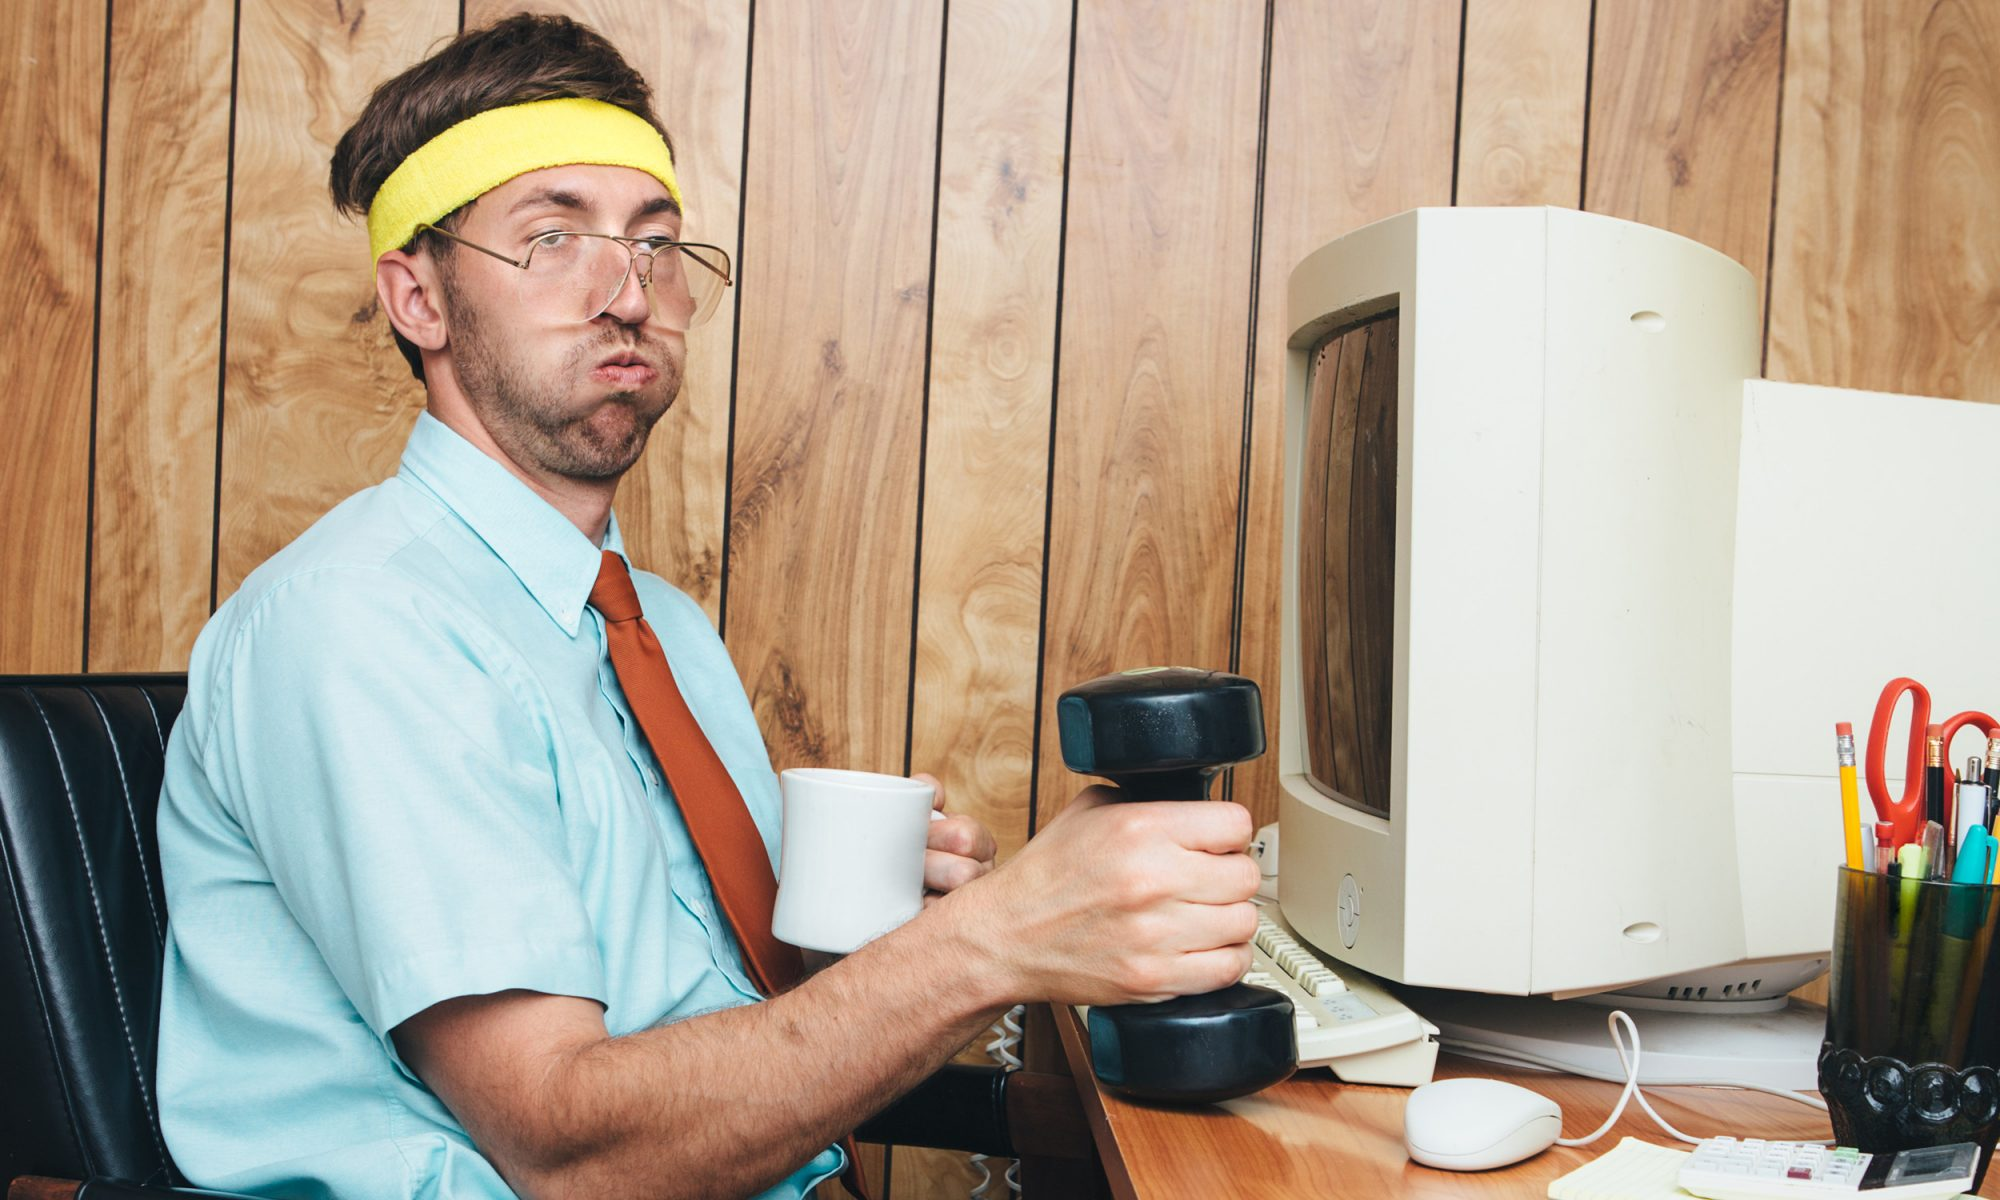 EC: Protein-Infused Coffee Will Get You Both Amped and Swole